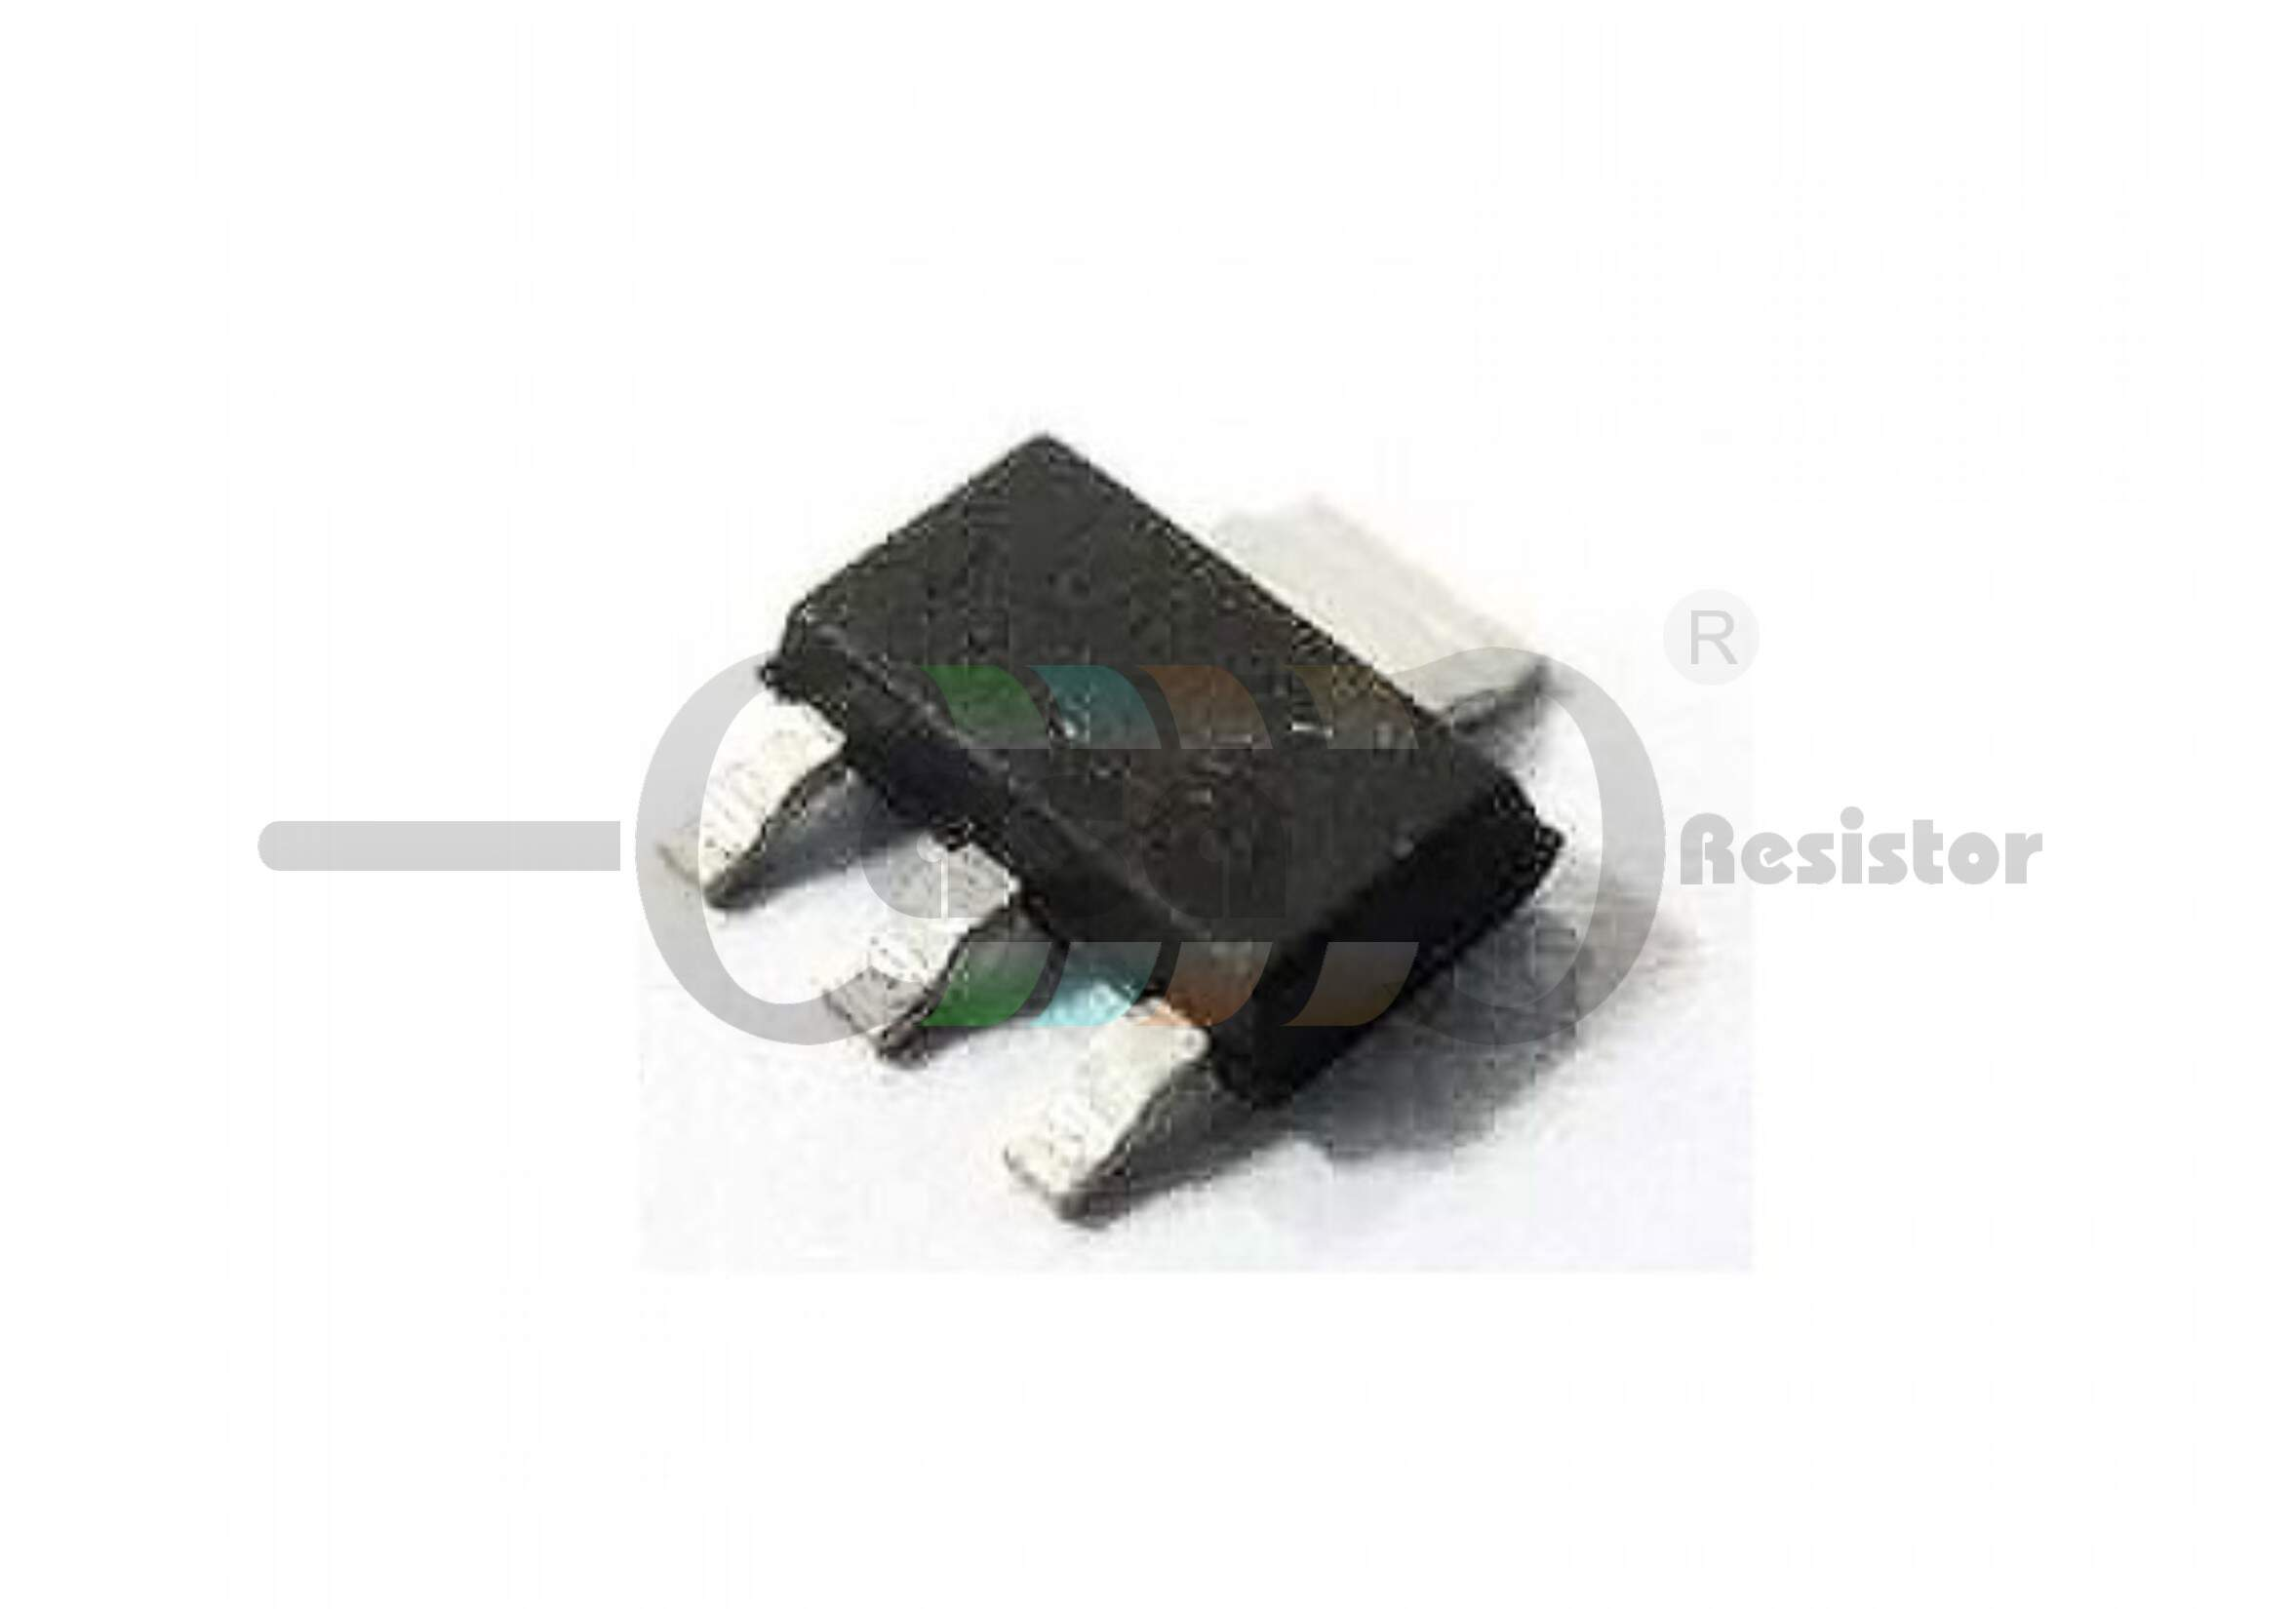 CI SMD 78L08 SOT-89 (ZCUS0016)